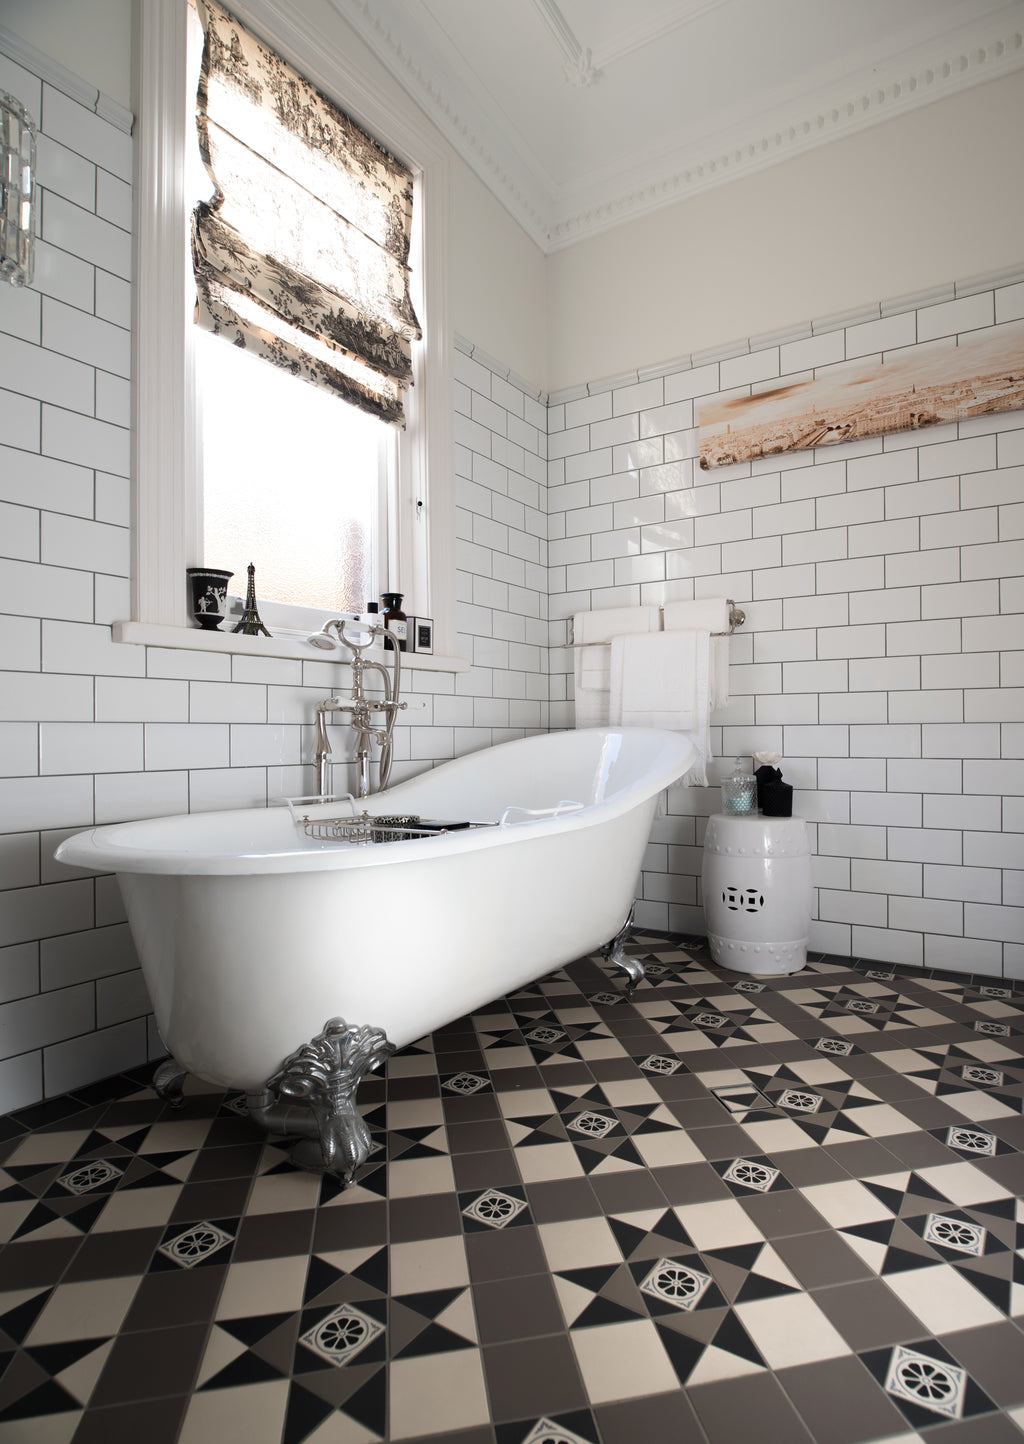 Bathroom Tiles Images. Bathroom Tiles Images L - Linkedlifes.com